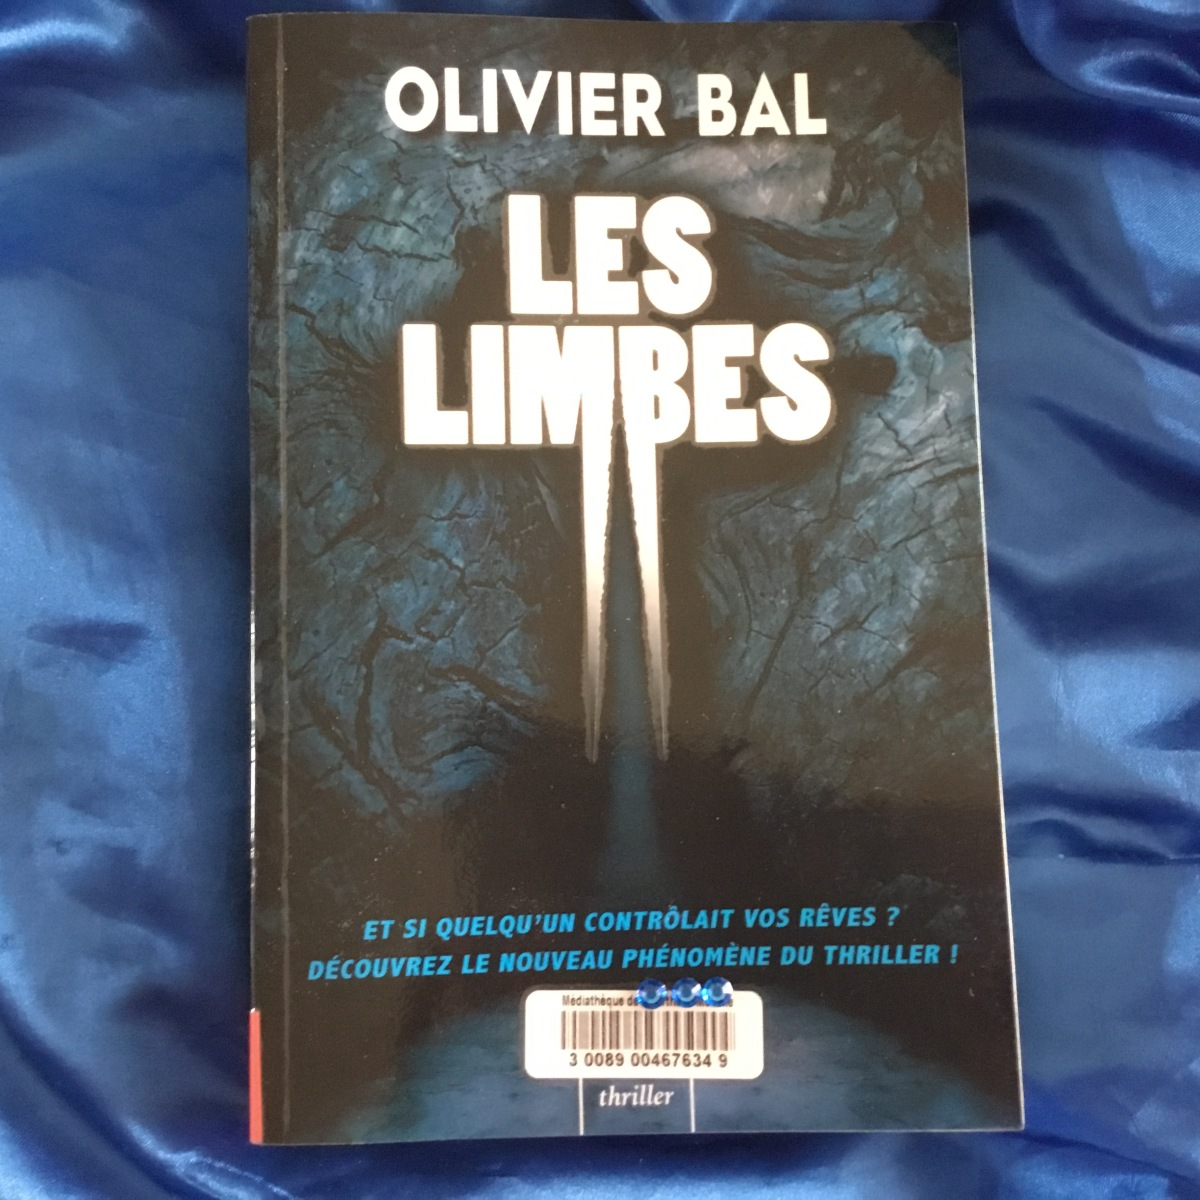 Les limbes, Olivier bal Valmyvoyou lit